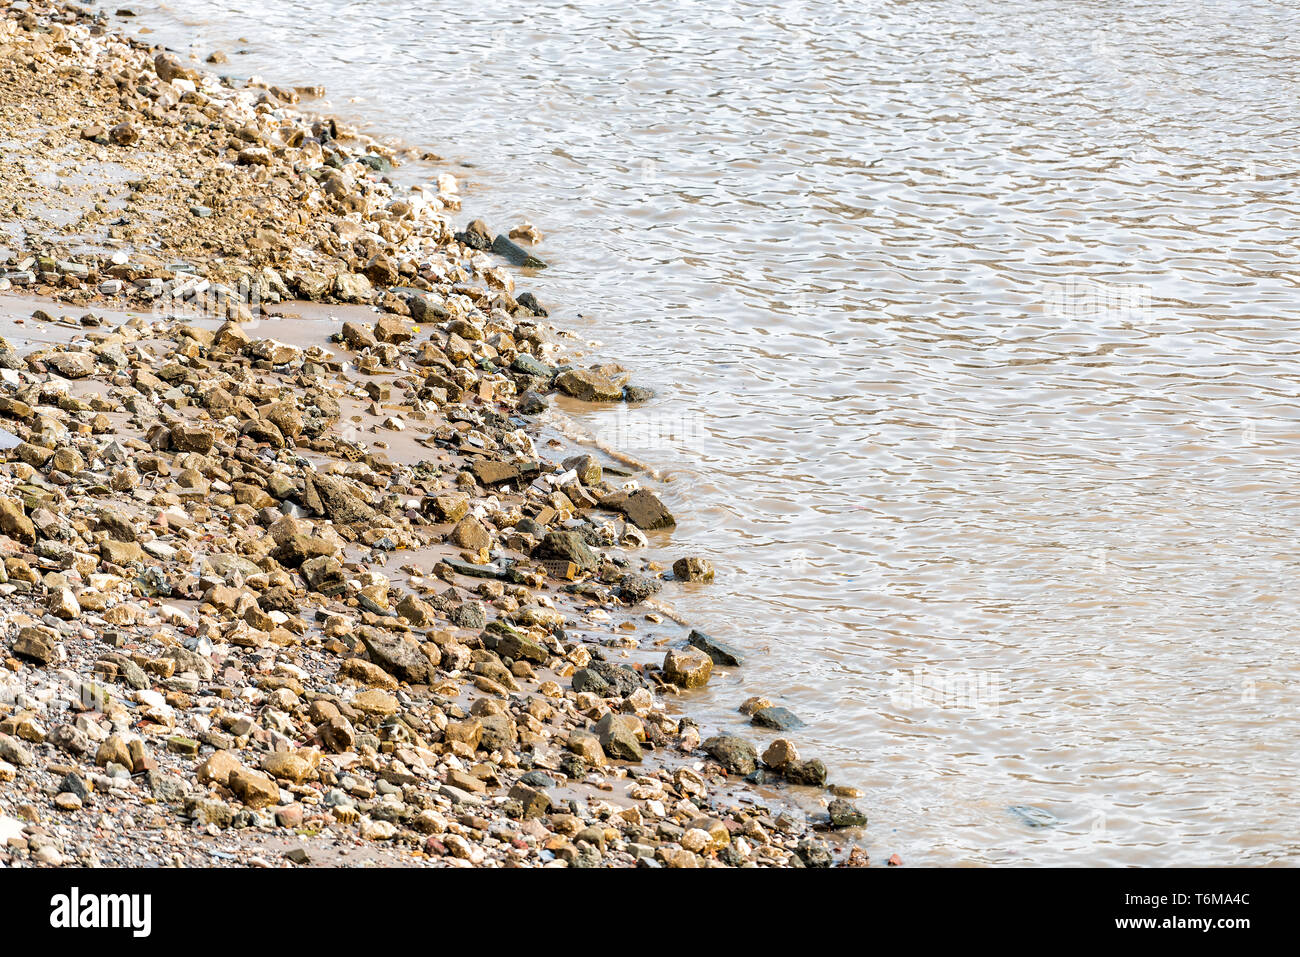 High angle closeup of Thames River in London with polluted dirty water and rocky beach shore on sunny day with brown color - Stock Image